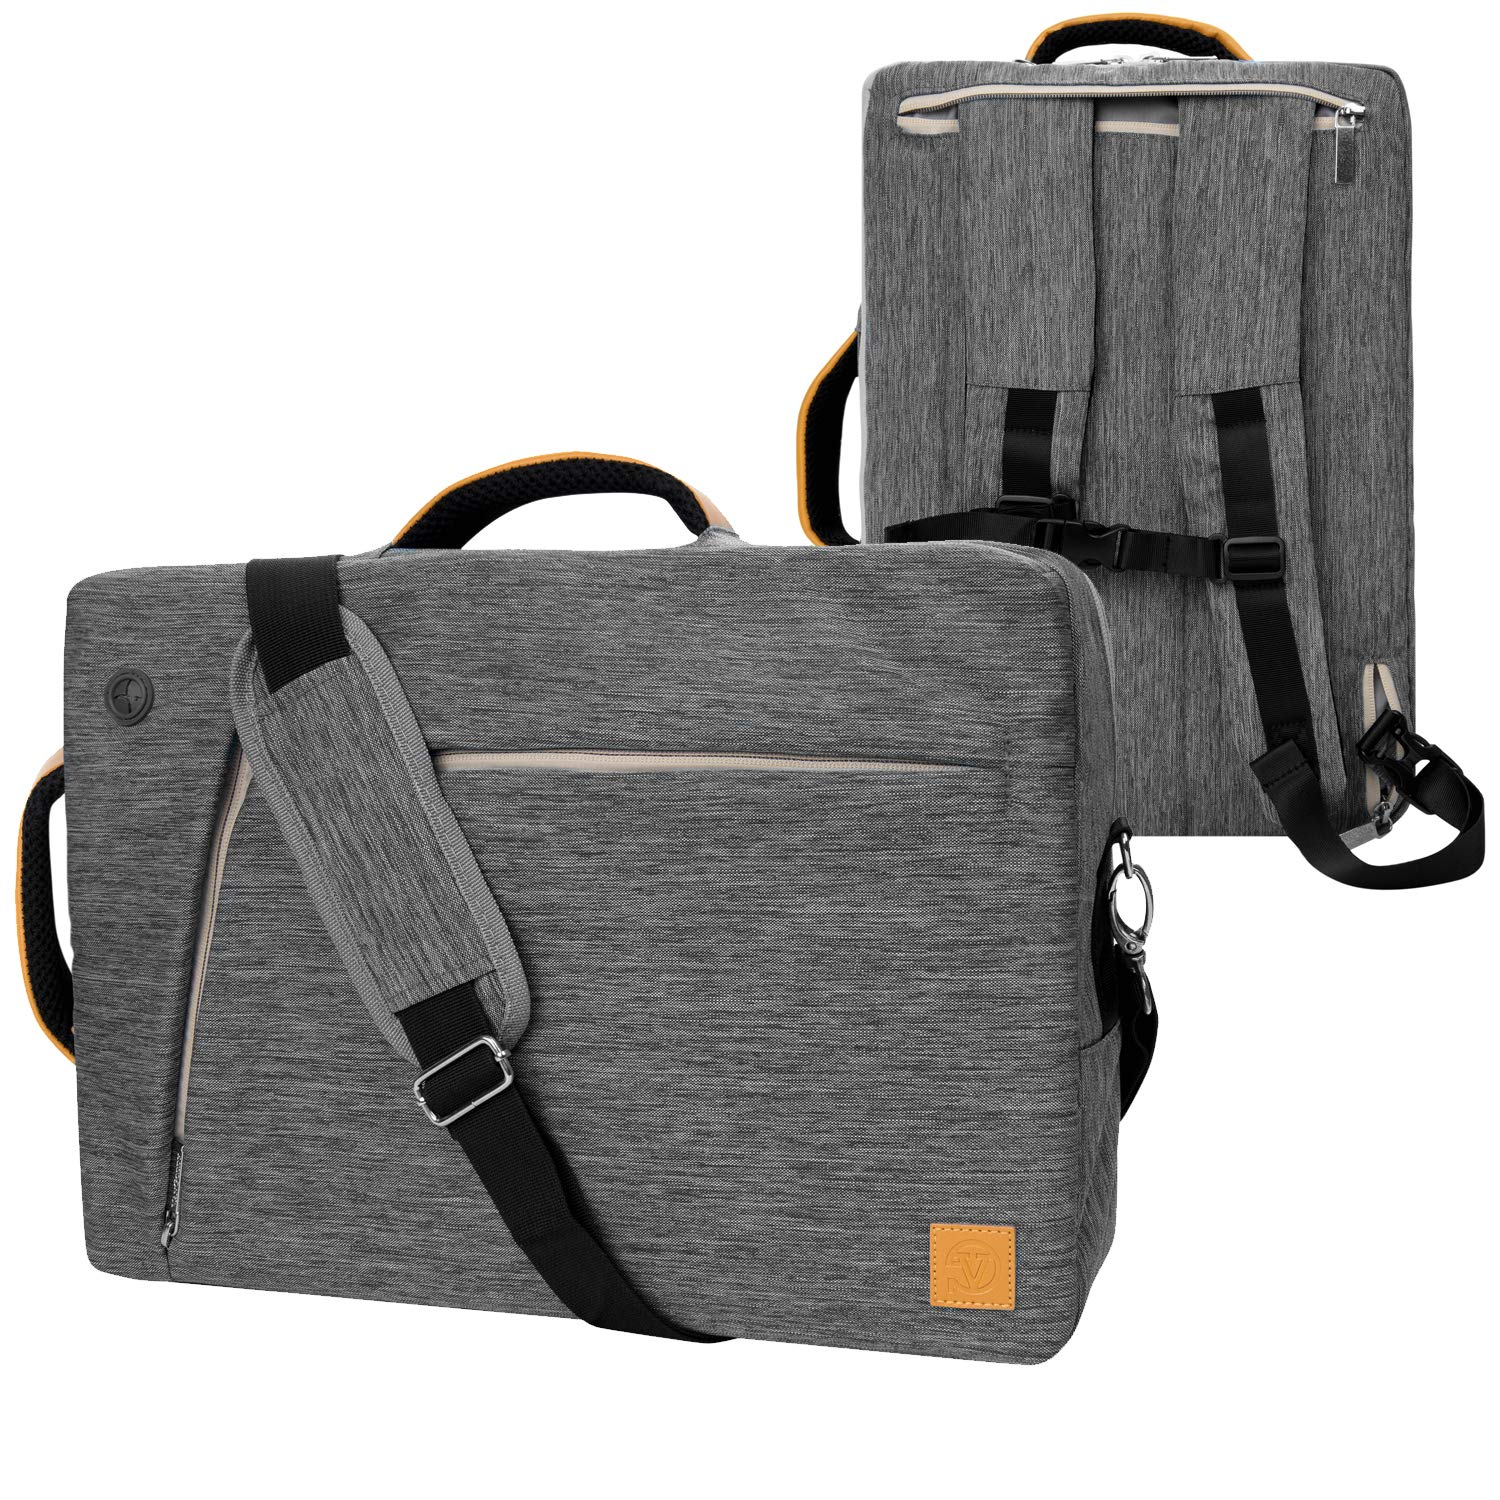 VanGoddy Slate Gray Convertible Laptop Bag for 14'' to 15.6-inch Dell Latitude, Inspiron, Chromebook, Precision, XPS, Vostro, G3 G5 G7 Gaming, Alienware m15